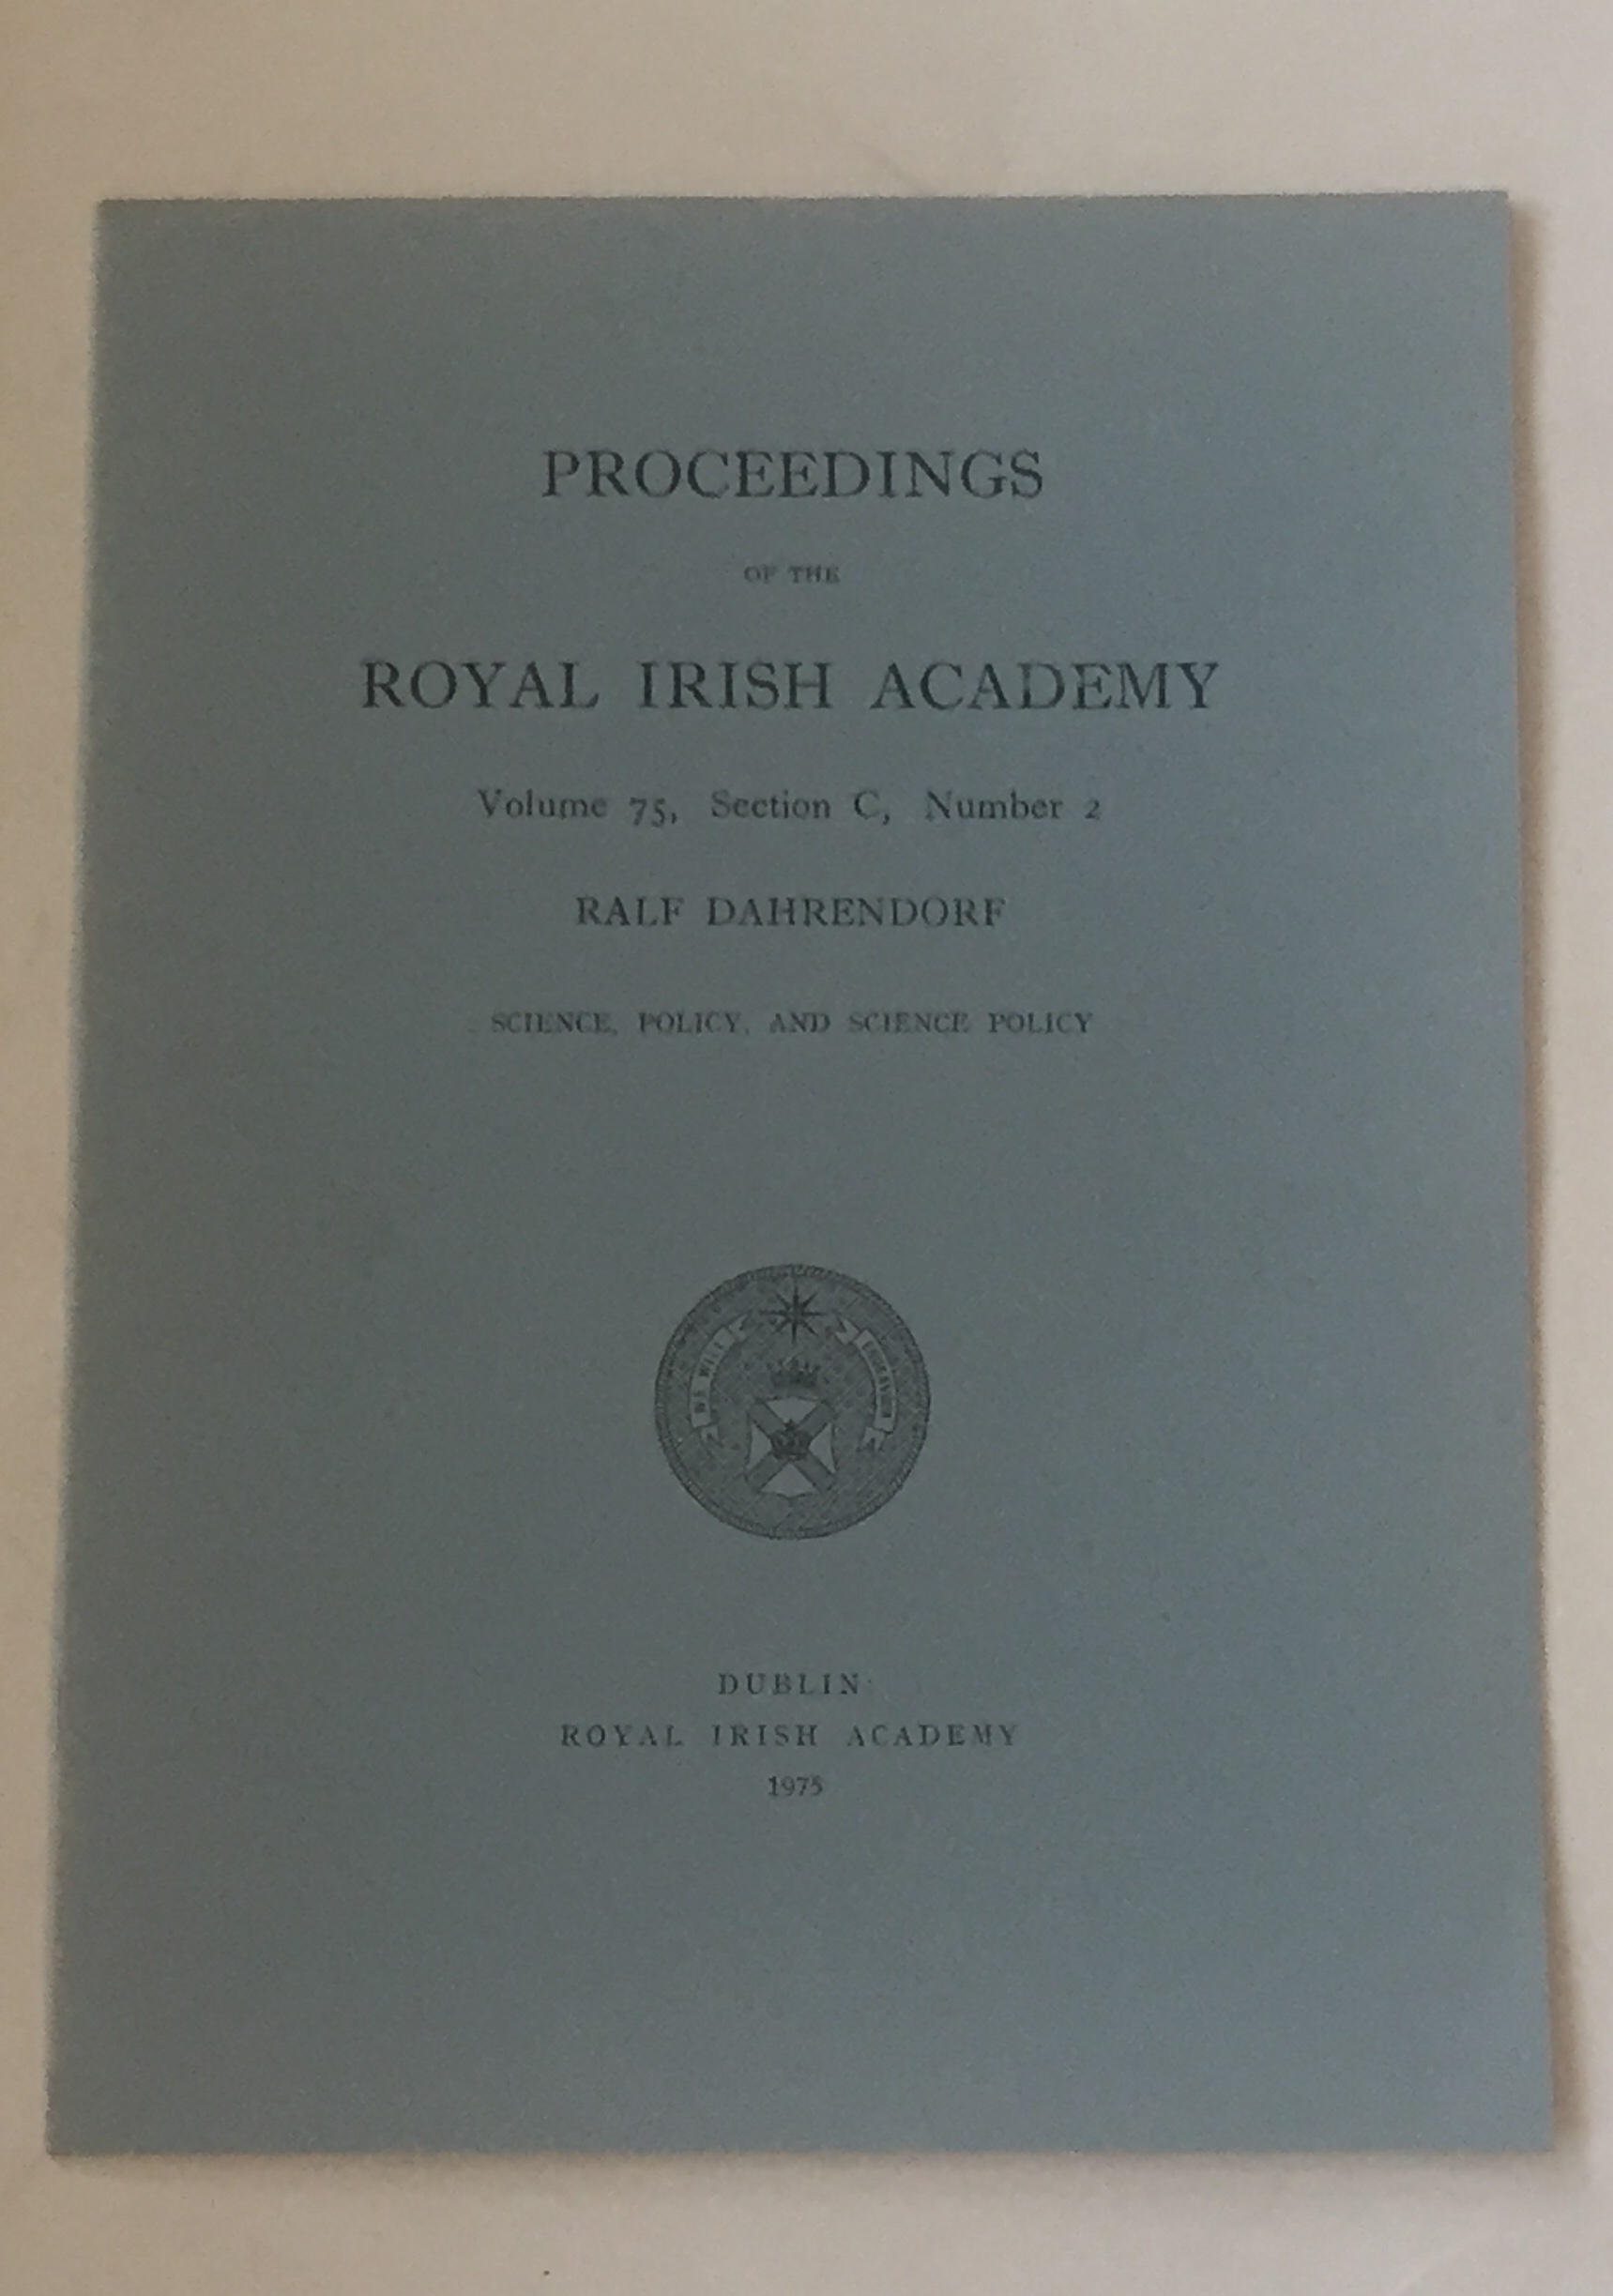 Image for Science, Policy, and Science Policy :Proceedings of the Royal Irish Academy, Volume 75, Section C, No. 2